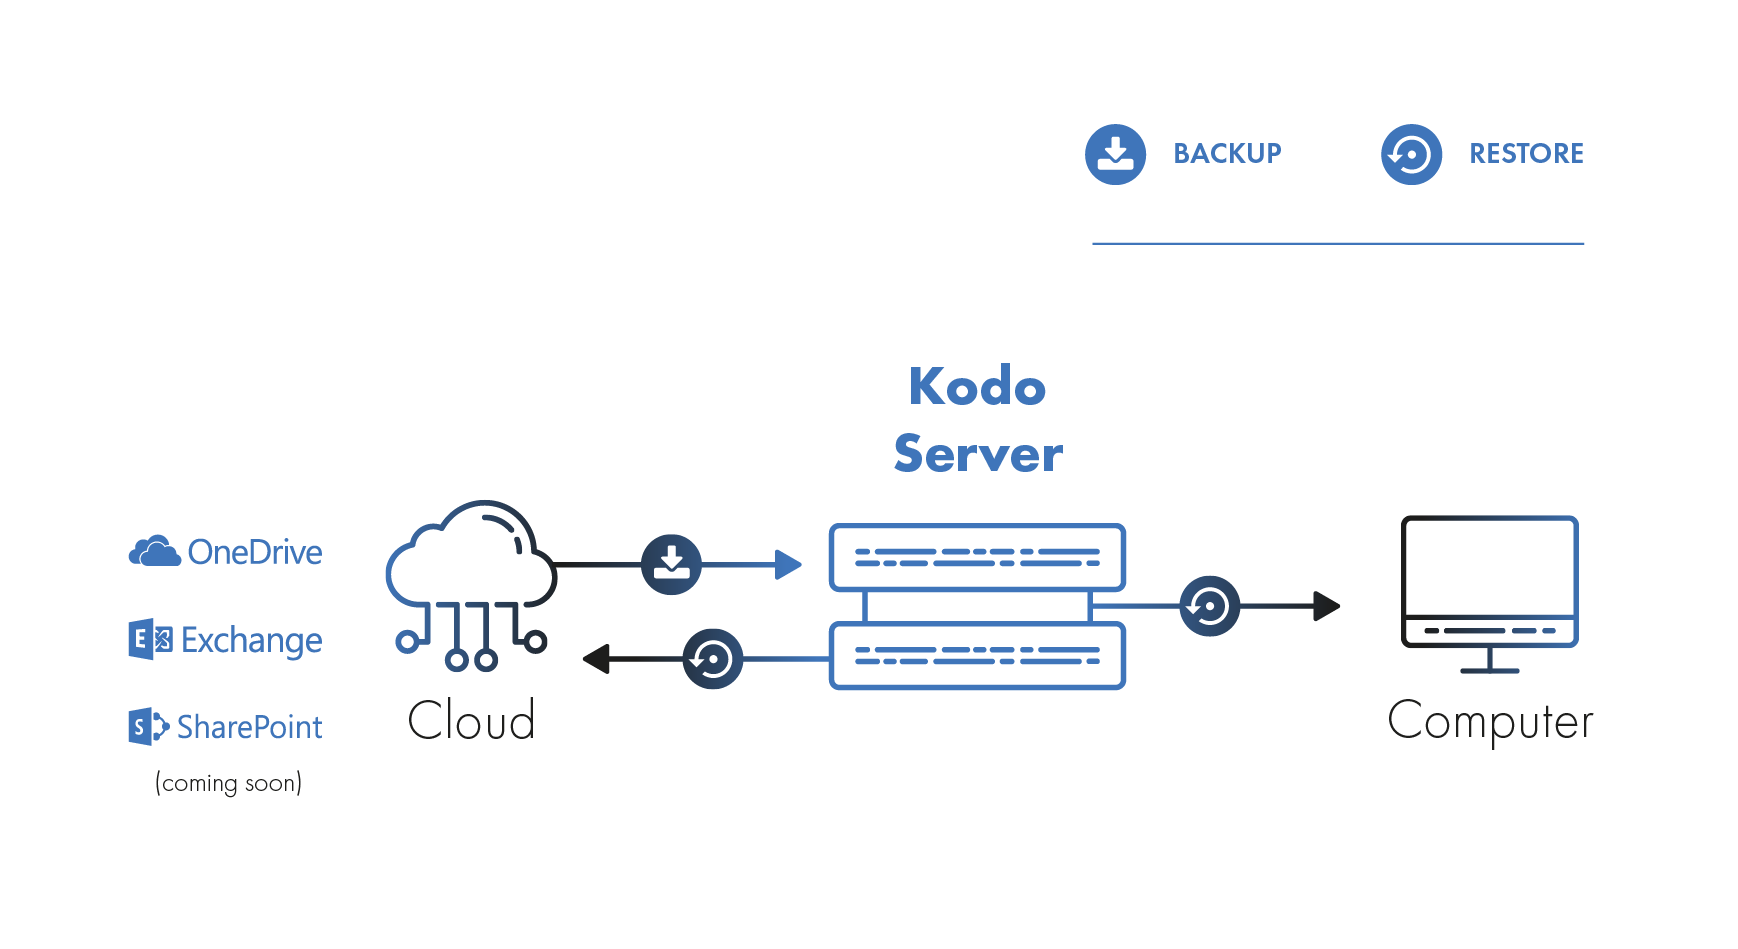 KODO for CLOUD Architecture